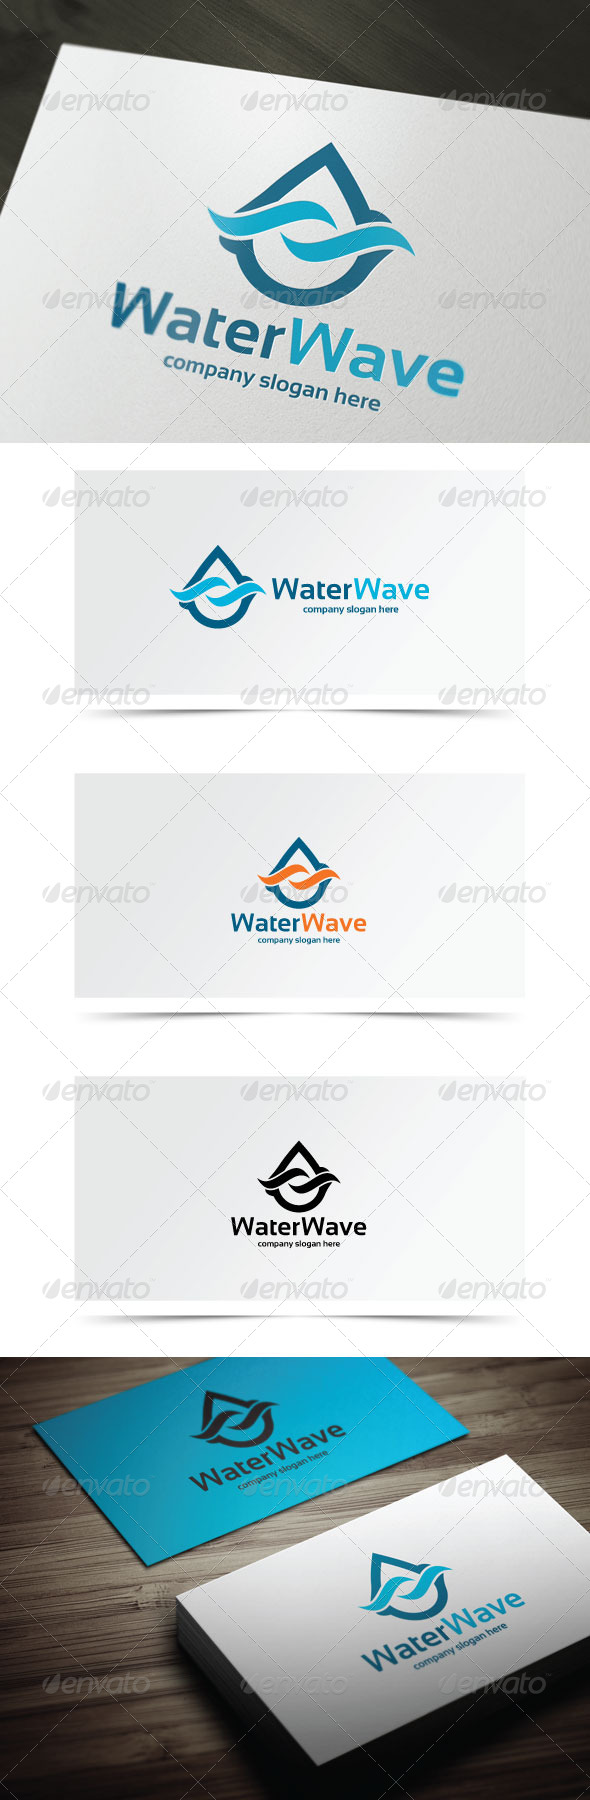 GraphicRiver Water Wave 7743374